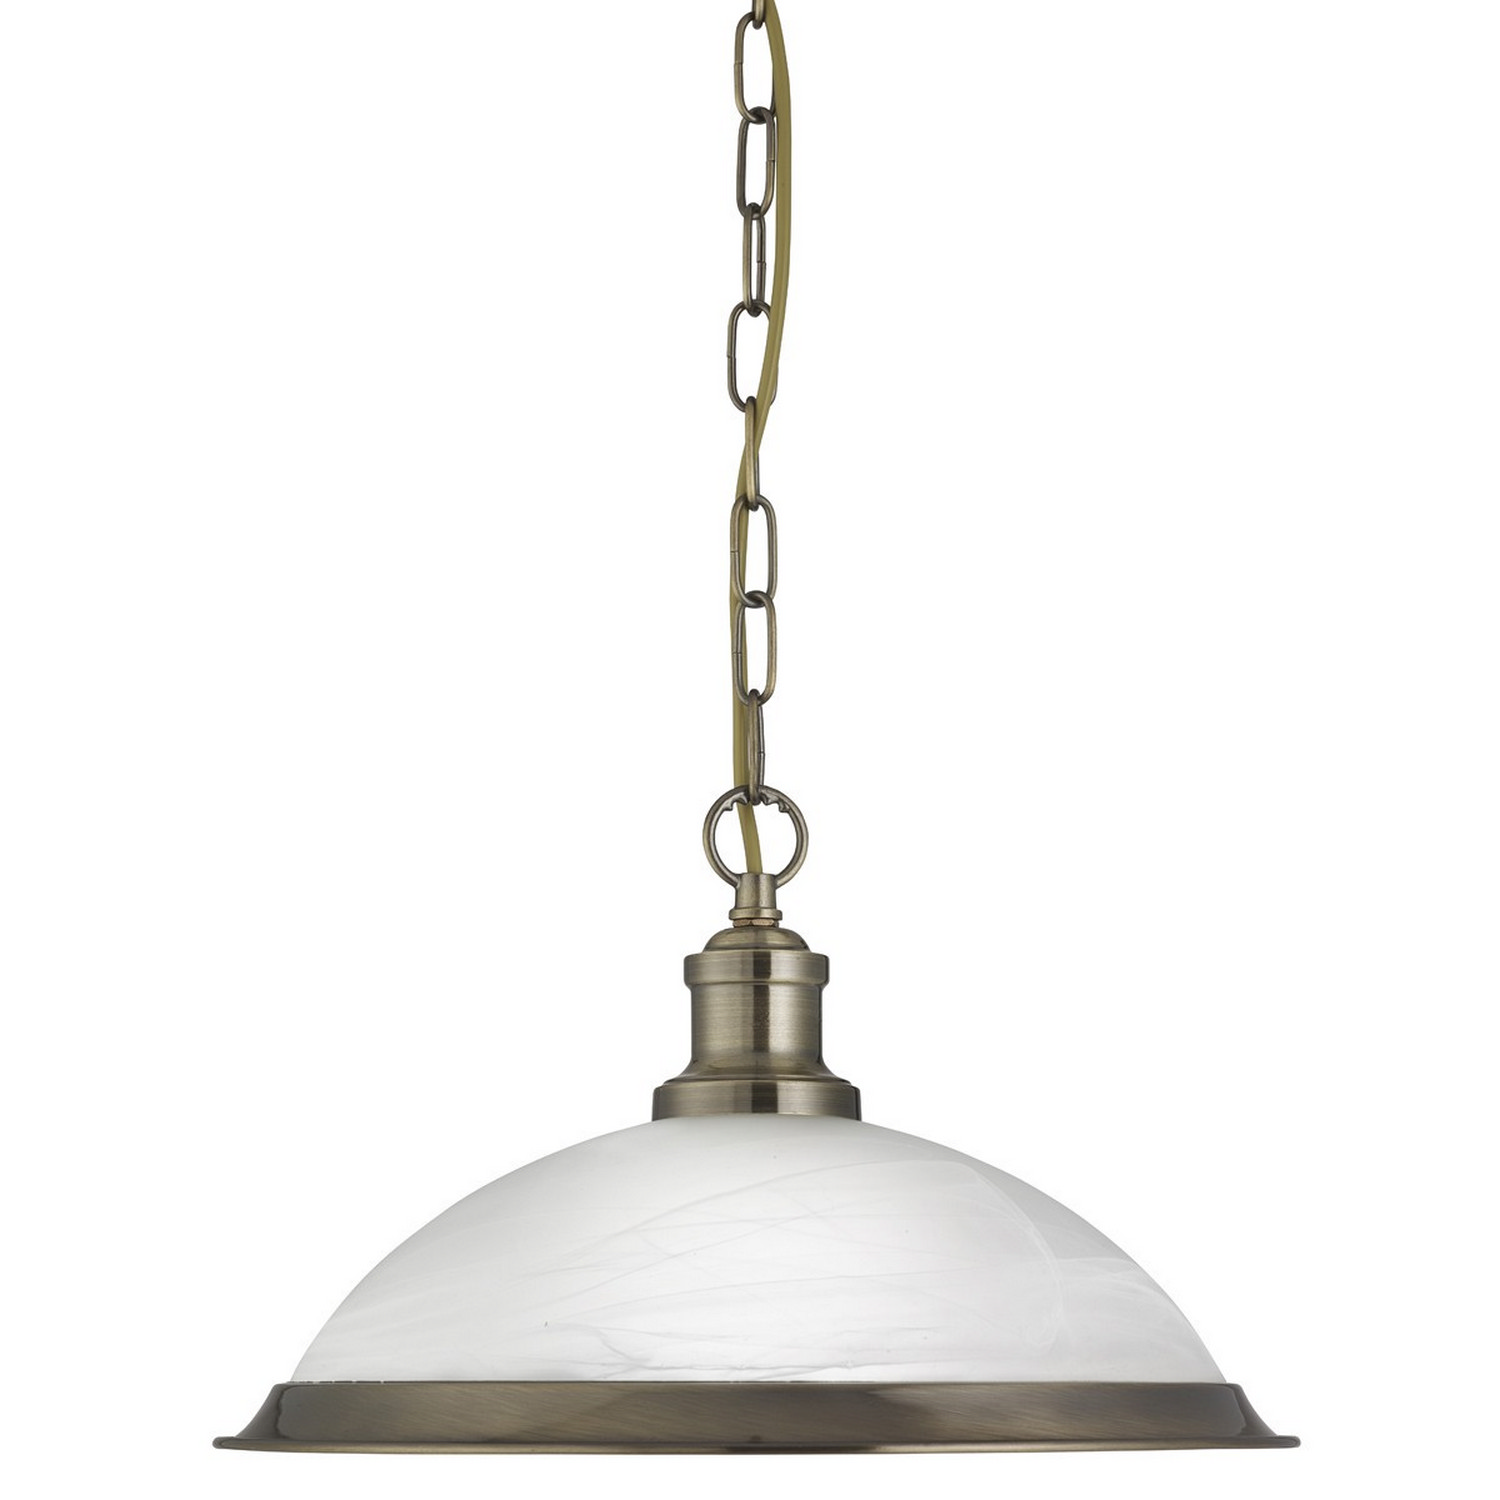 brass world product notini large lamp decaso by pendant swedish harald class